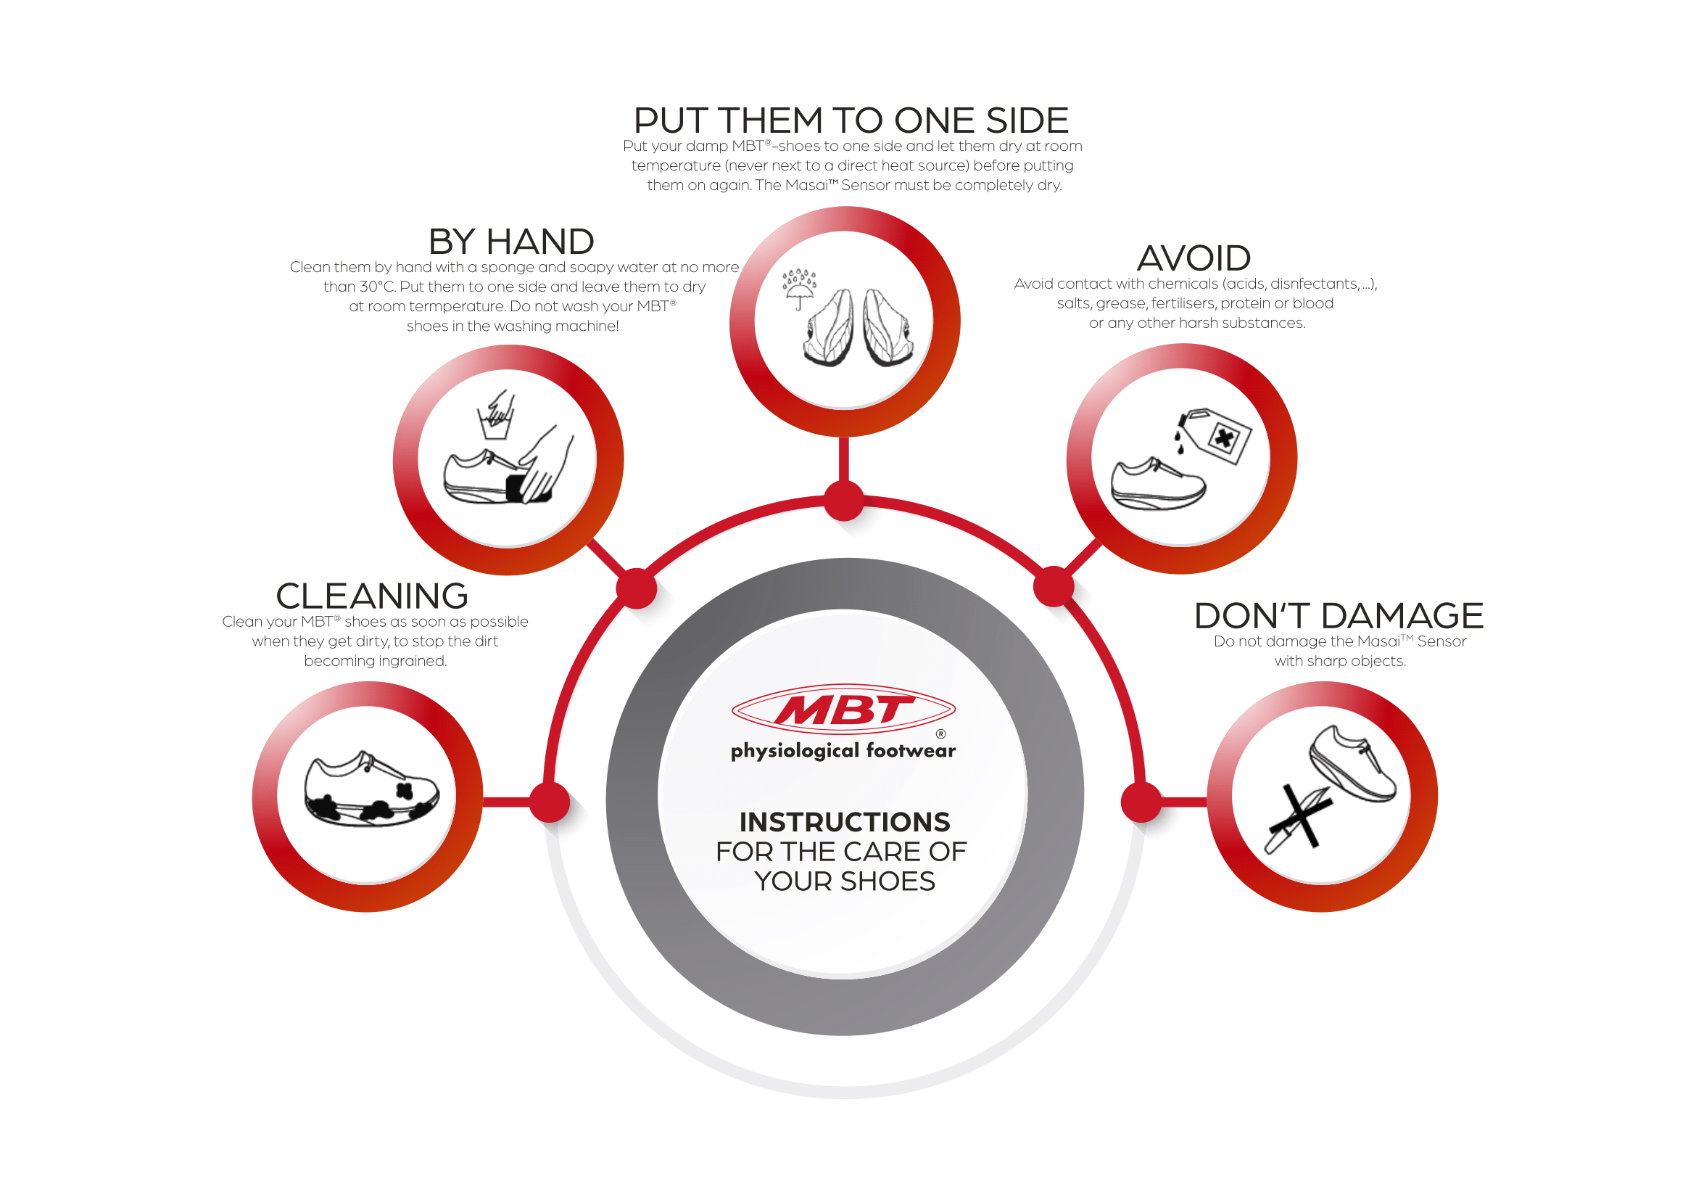 INSTRUCTIONS FOR THE CARE OF YOUR MBT SHOES